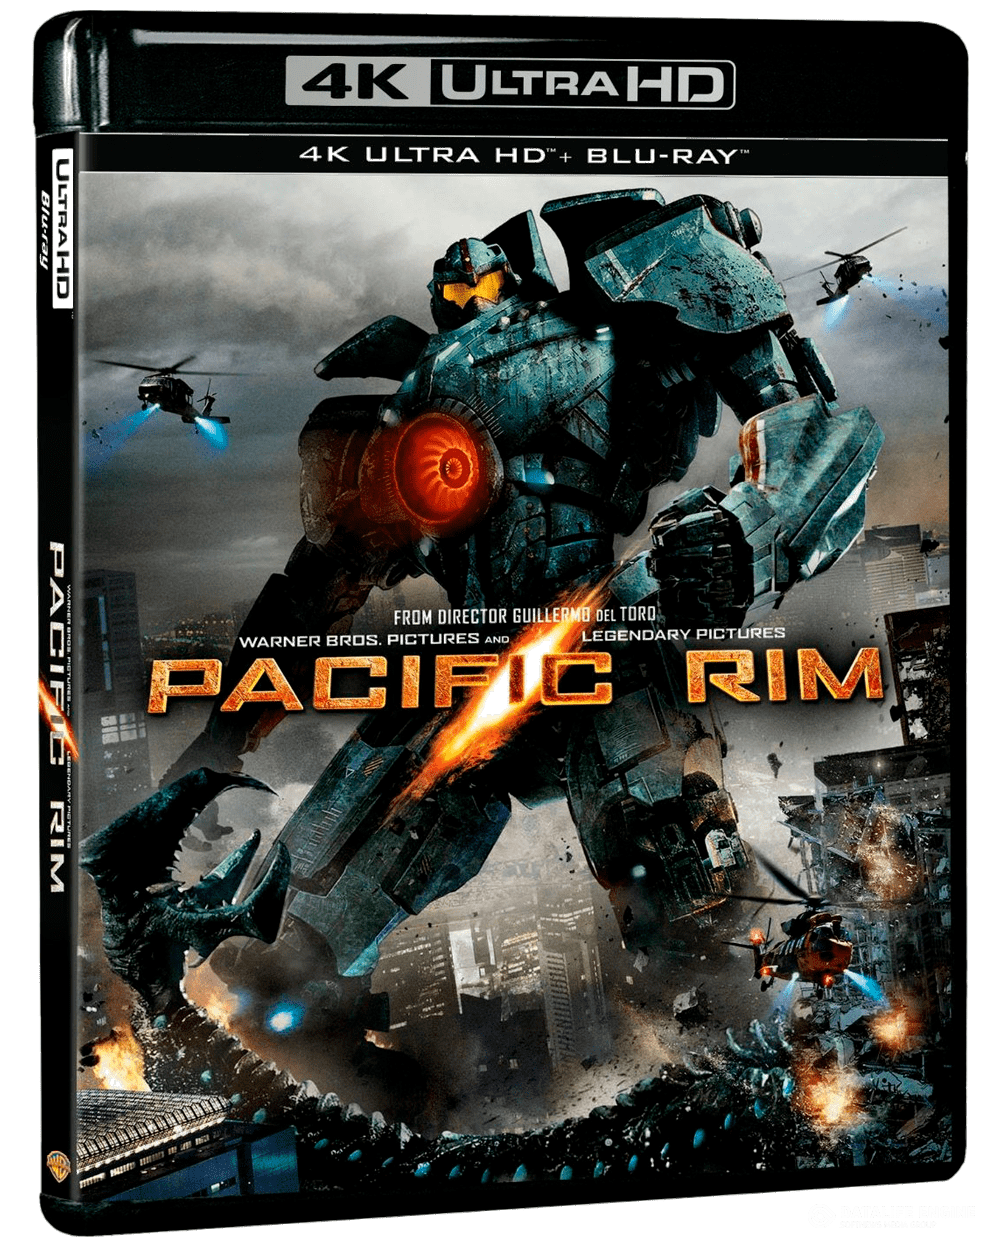 Pacific Rim (2013) 2160p 4K UltraHD BluRay (x265 HEVC 10bit) 2CH AAC